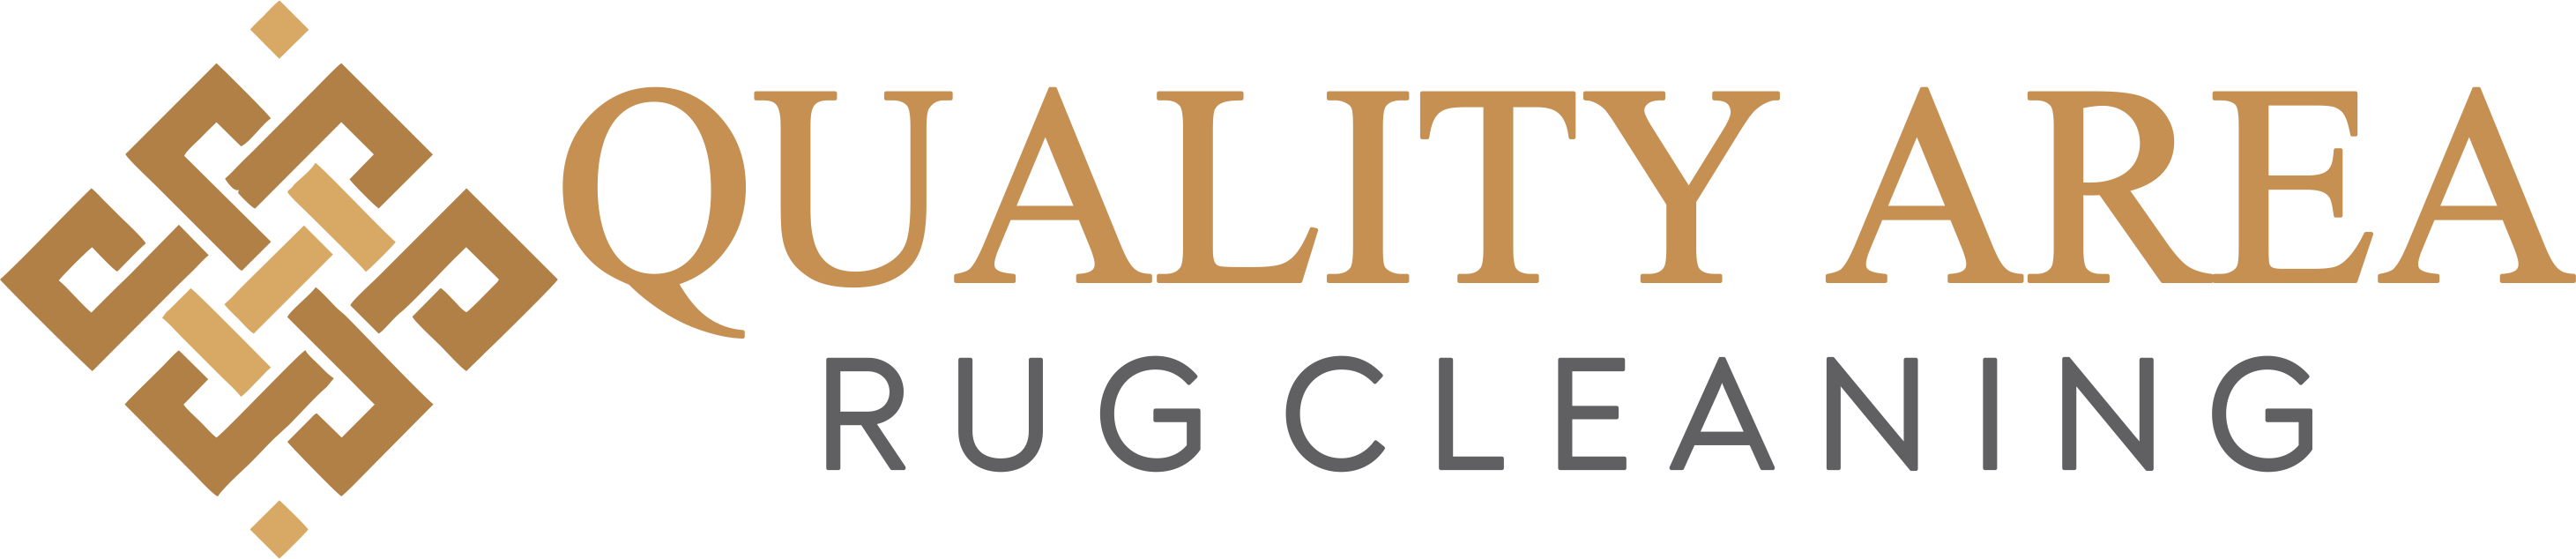 Quality Area Rug Cleaning Logo